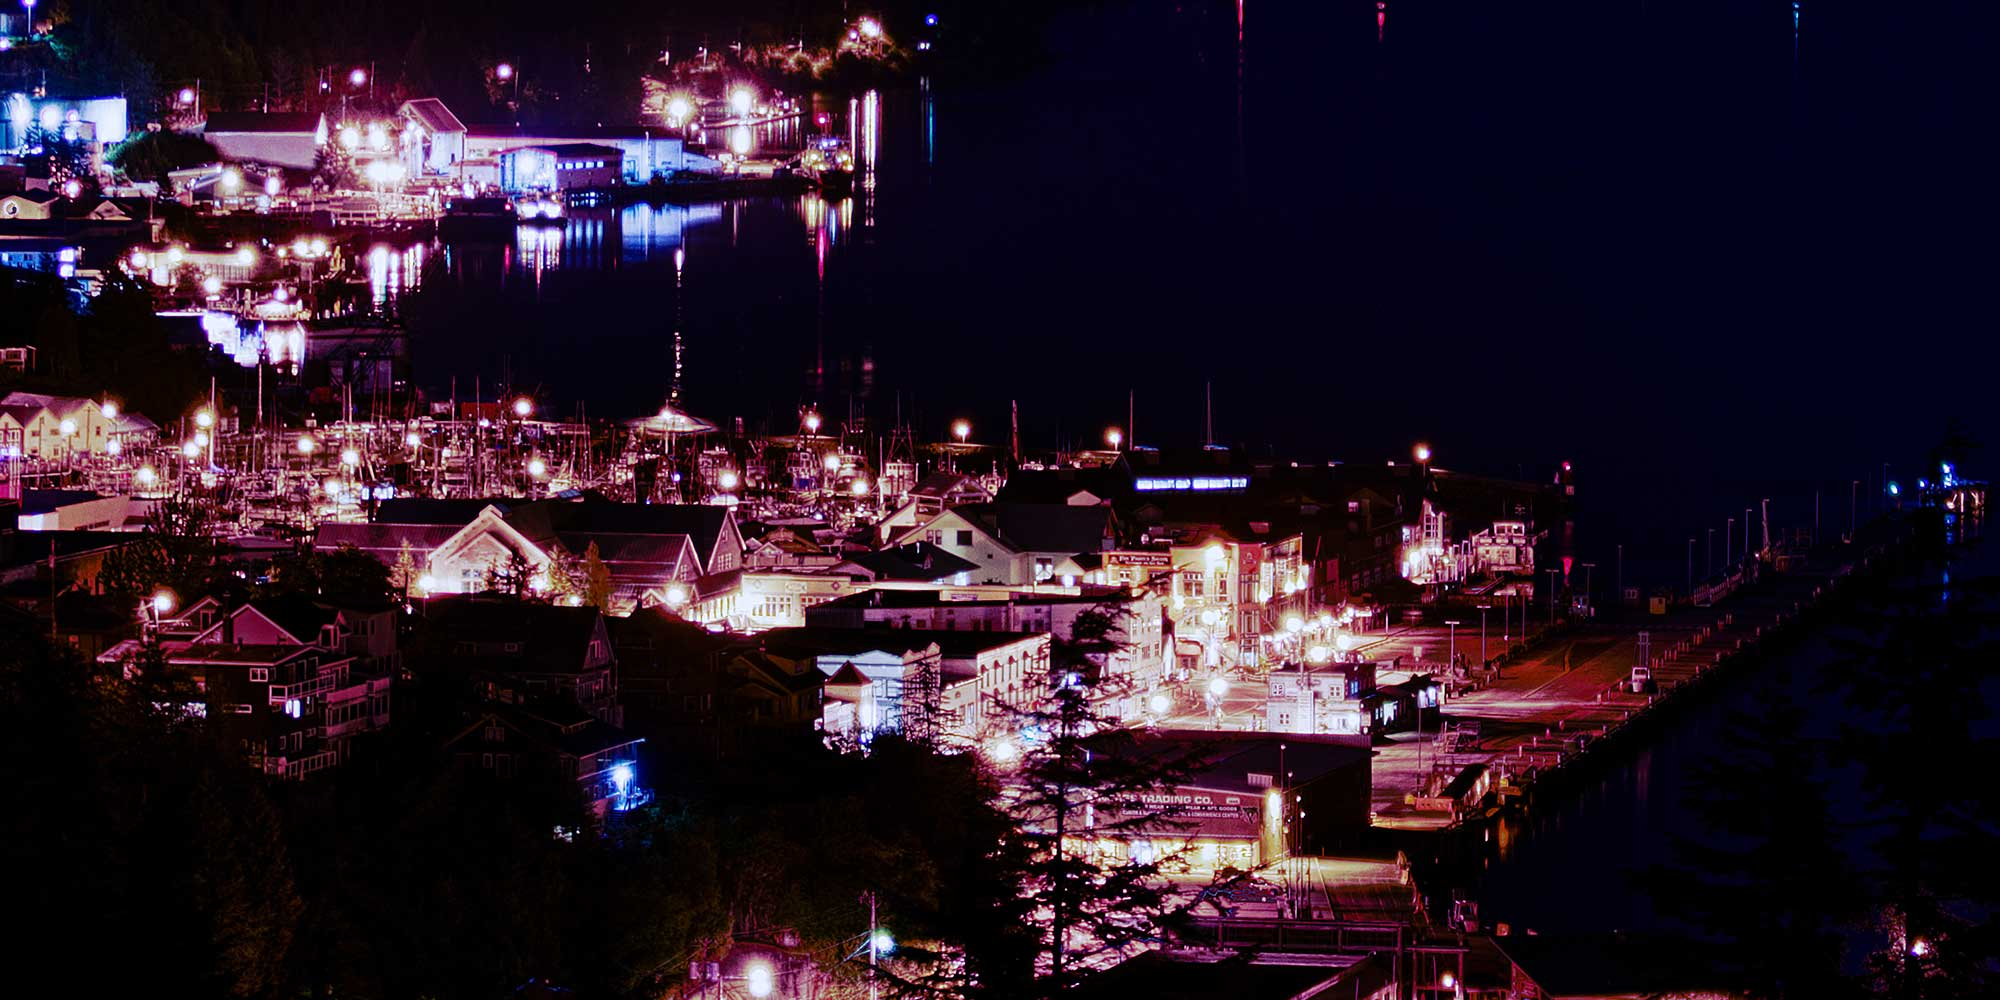 ketchikan at night